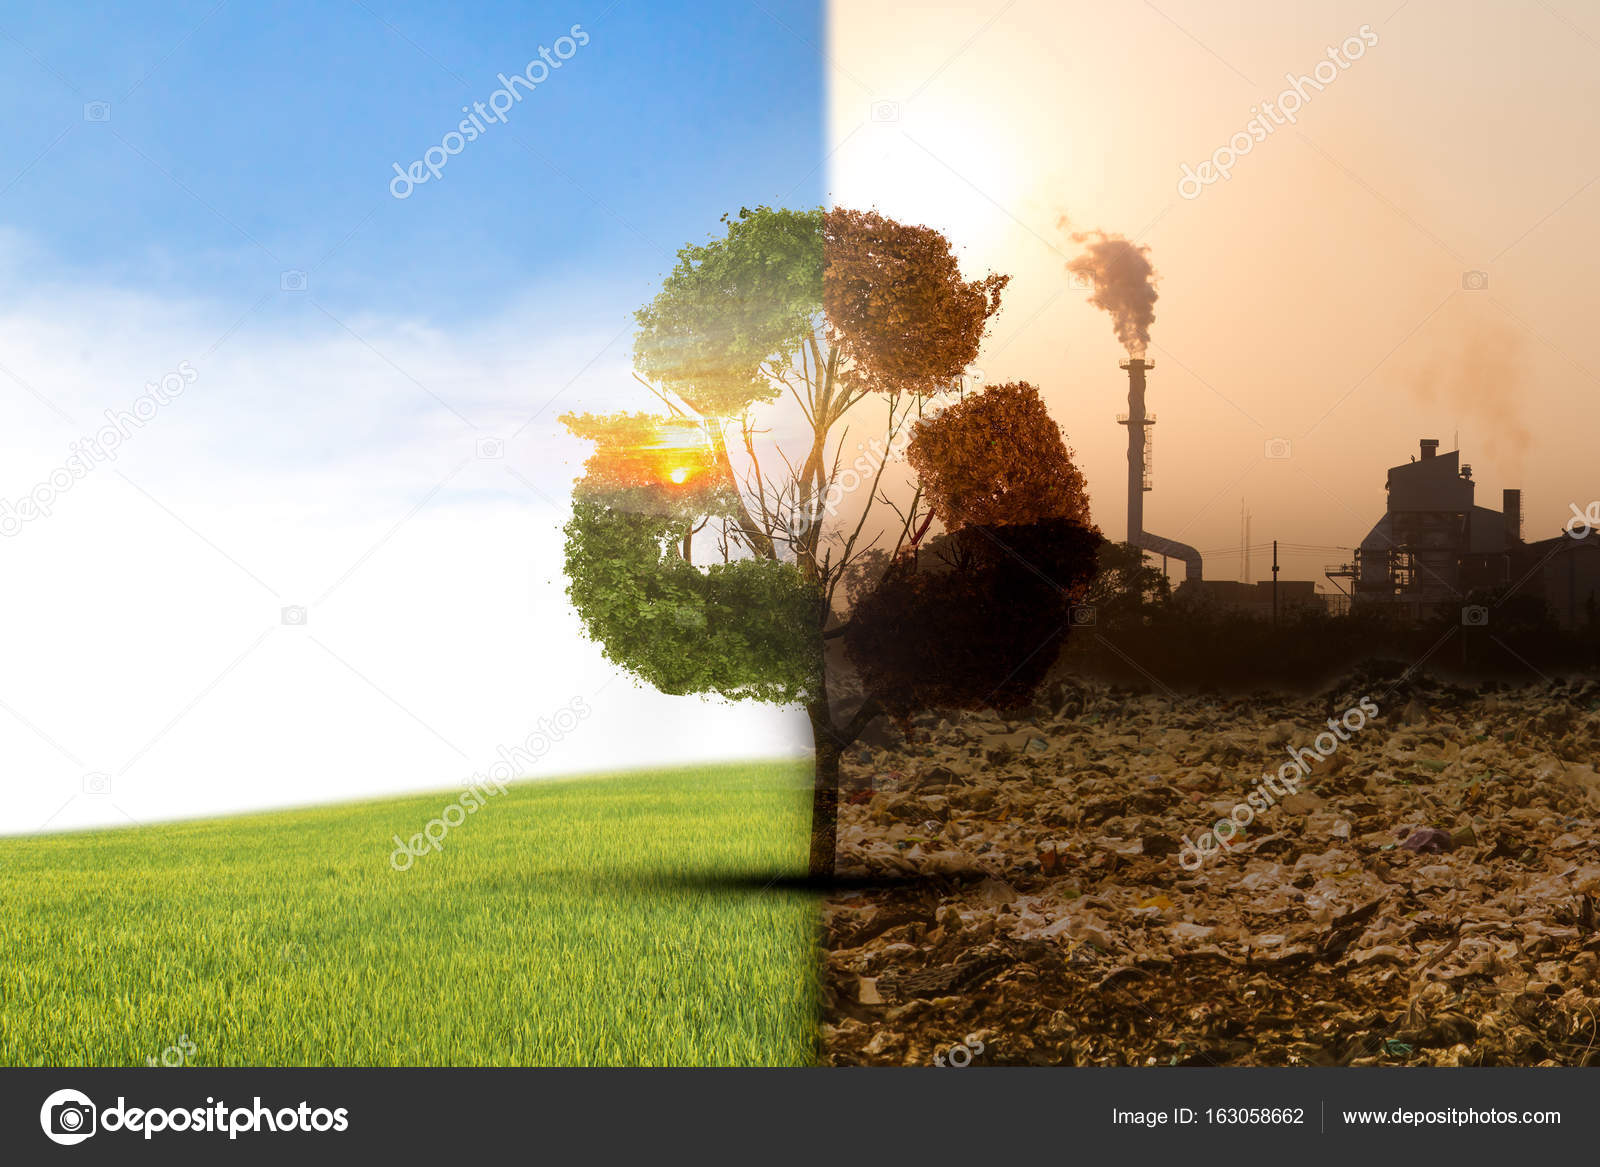 Concept Climate Has Changed Half Alive Half Dead Tree Standing